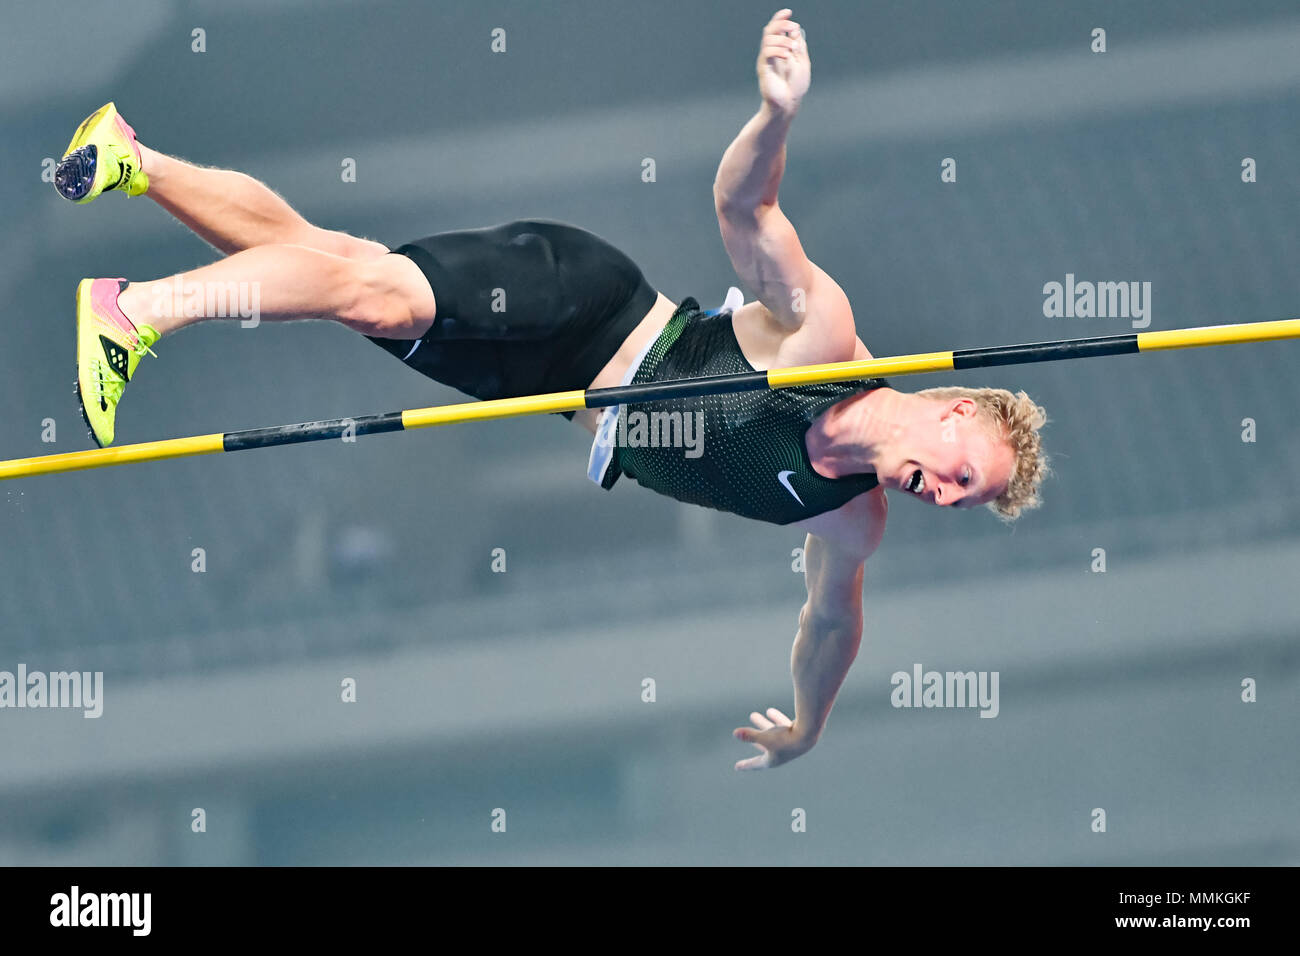 Shanghai, China. 12th May 2018. Menno Vloon (NED) in action  during 2018 IAAF Shanghai Diamond League: MEN'S POLE VAULT at Shanghai Stadium on Saturday, 12 May 2018. SHANGHAI, CHINA. Credit: Taka G Wu Credit: Taka Wu/Alamy Live News - Stock Image